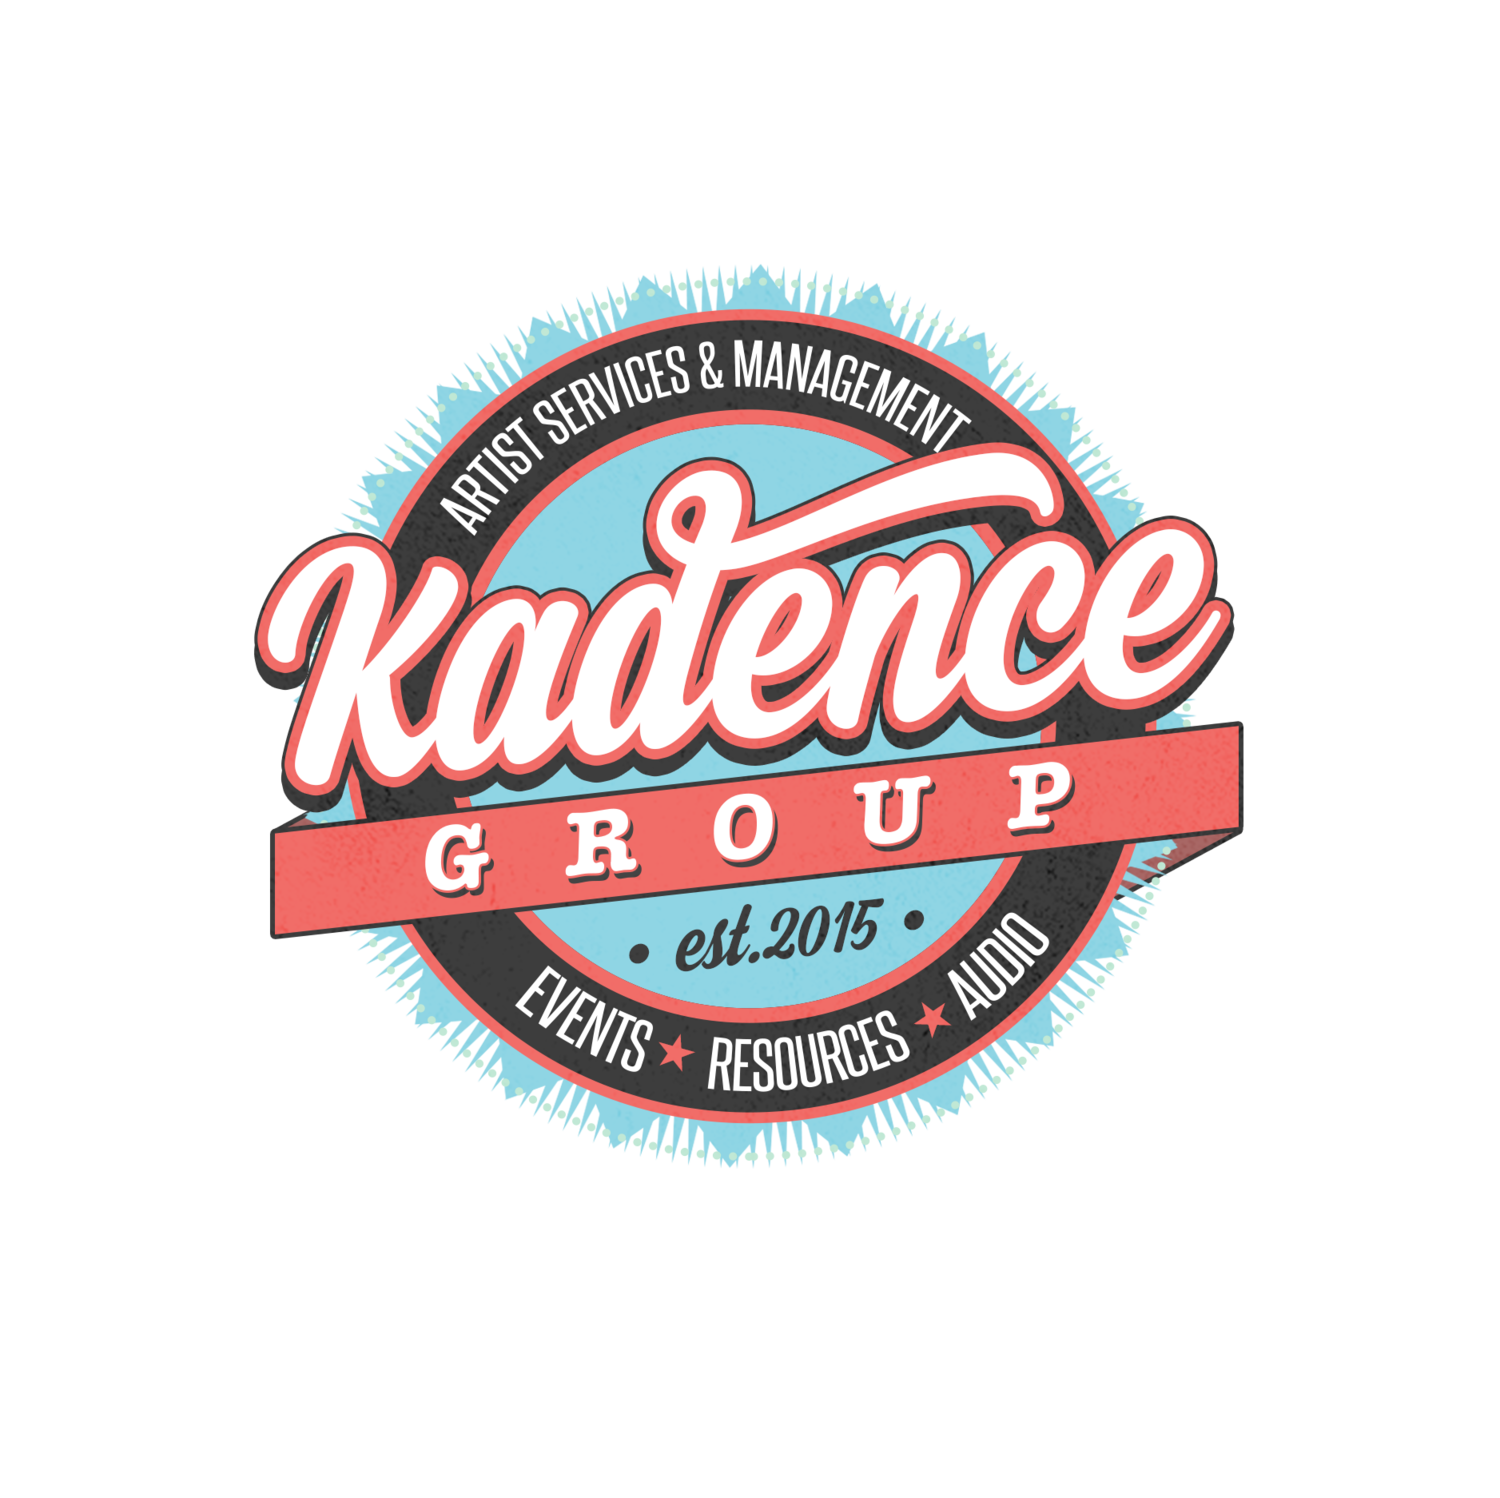 Kadence Group